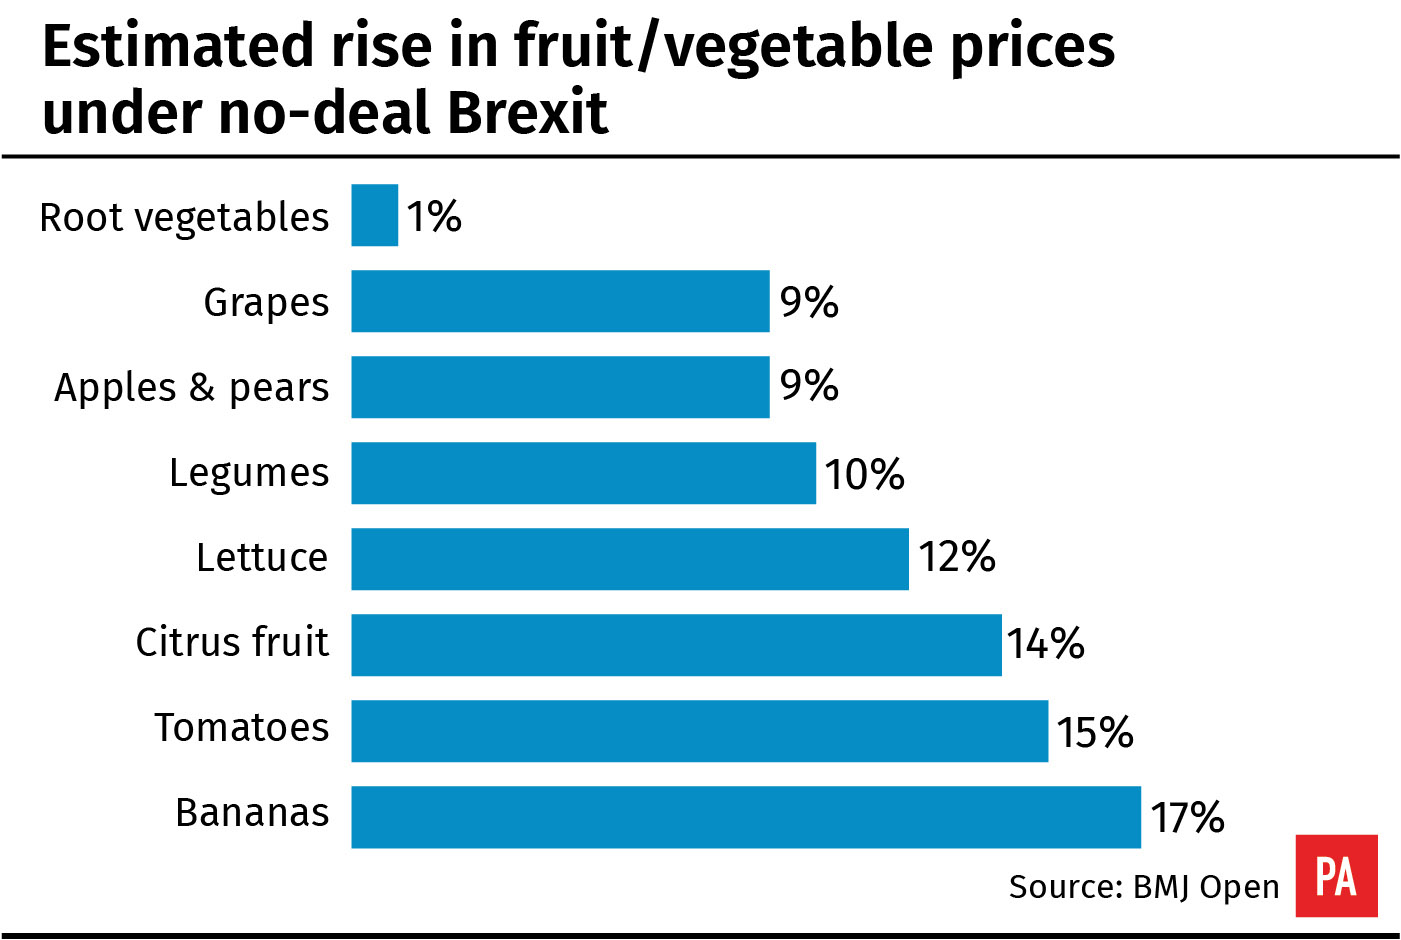 Estimated rise in fruit/vegetable prices under no-deal Brexit